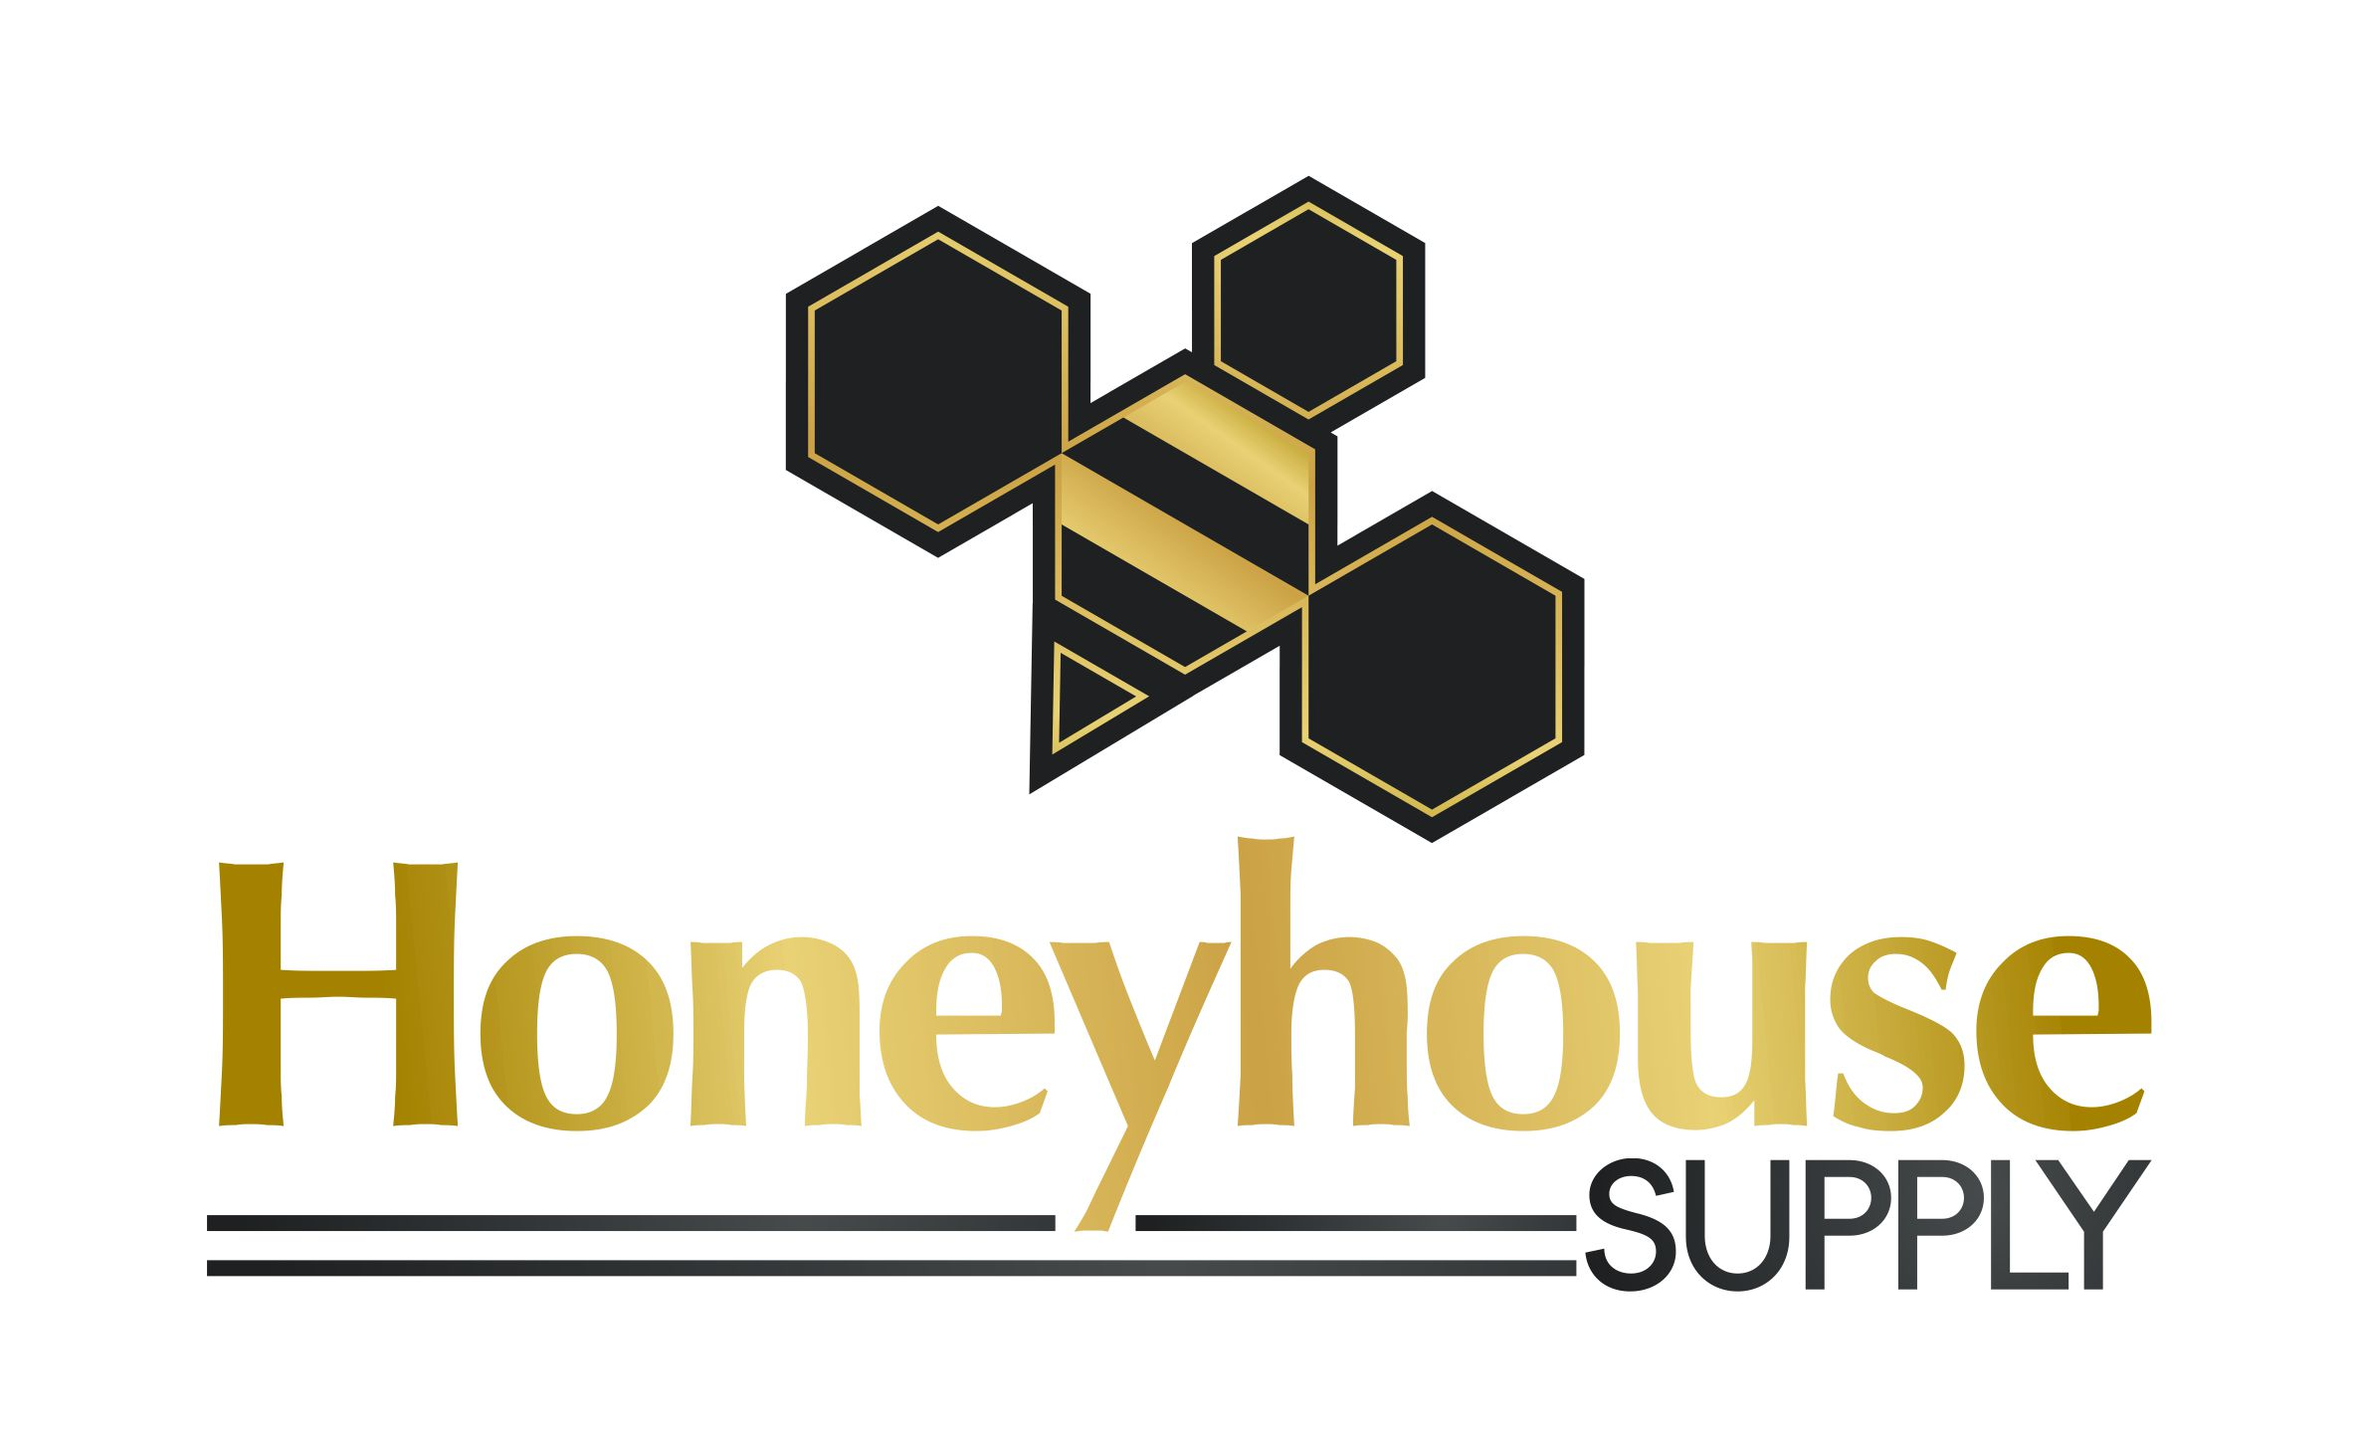 Honeyhouse Supply